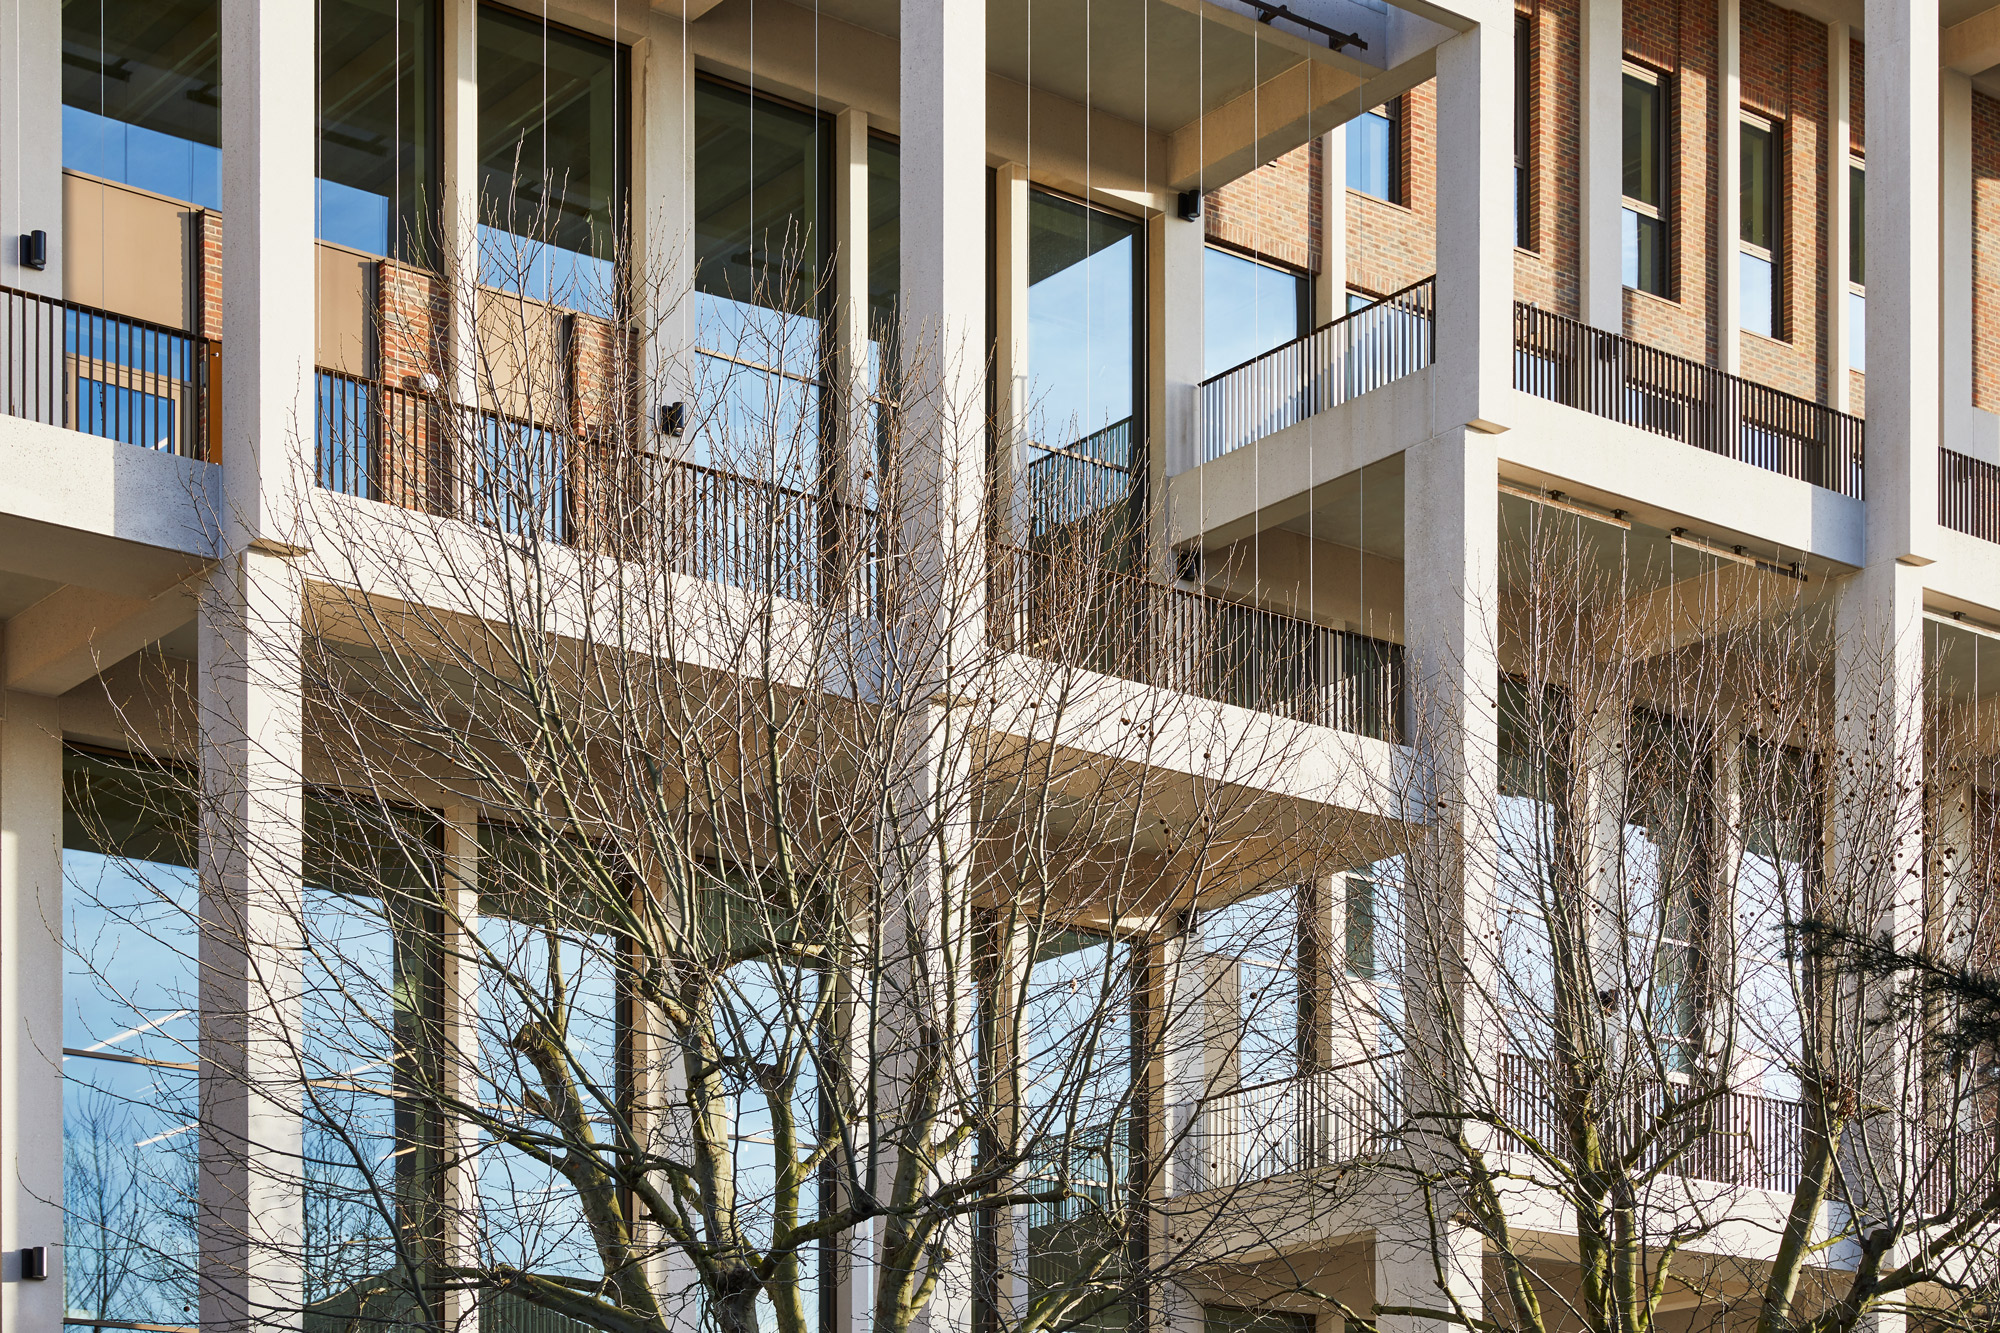 Town House di Grafton Architects © Ed Reeve, courtesy of Kingston University & Grafton Architects